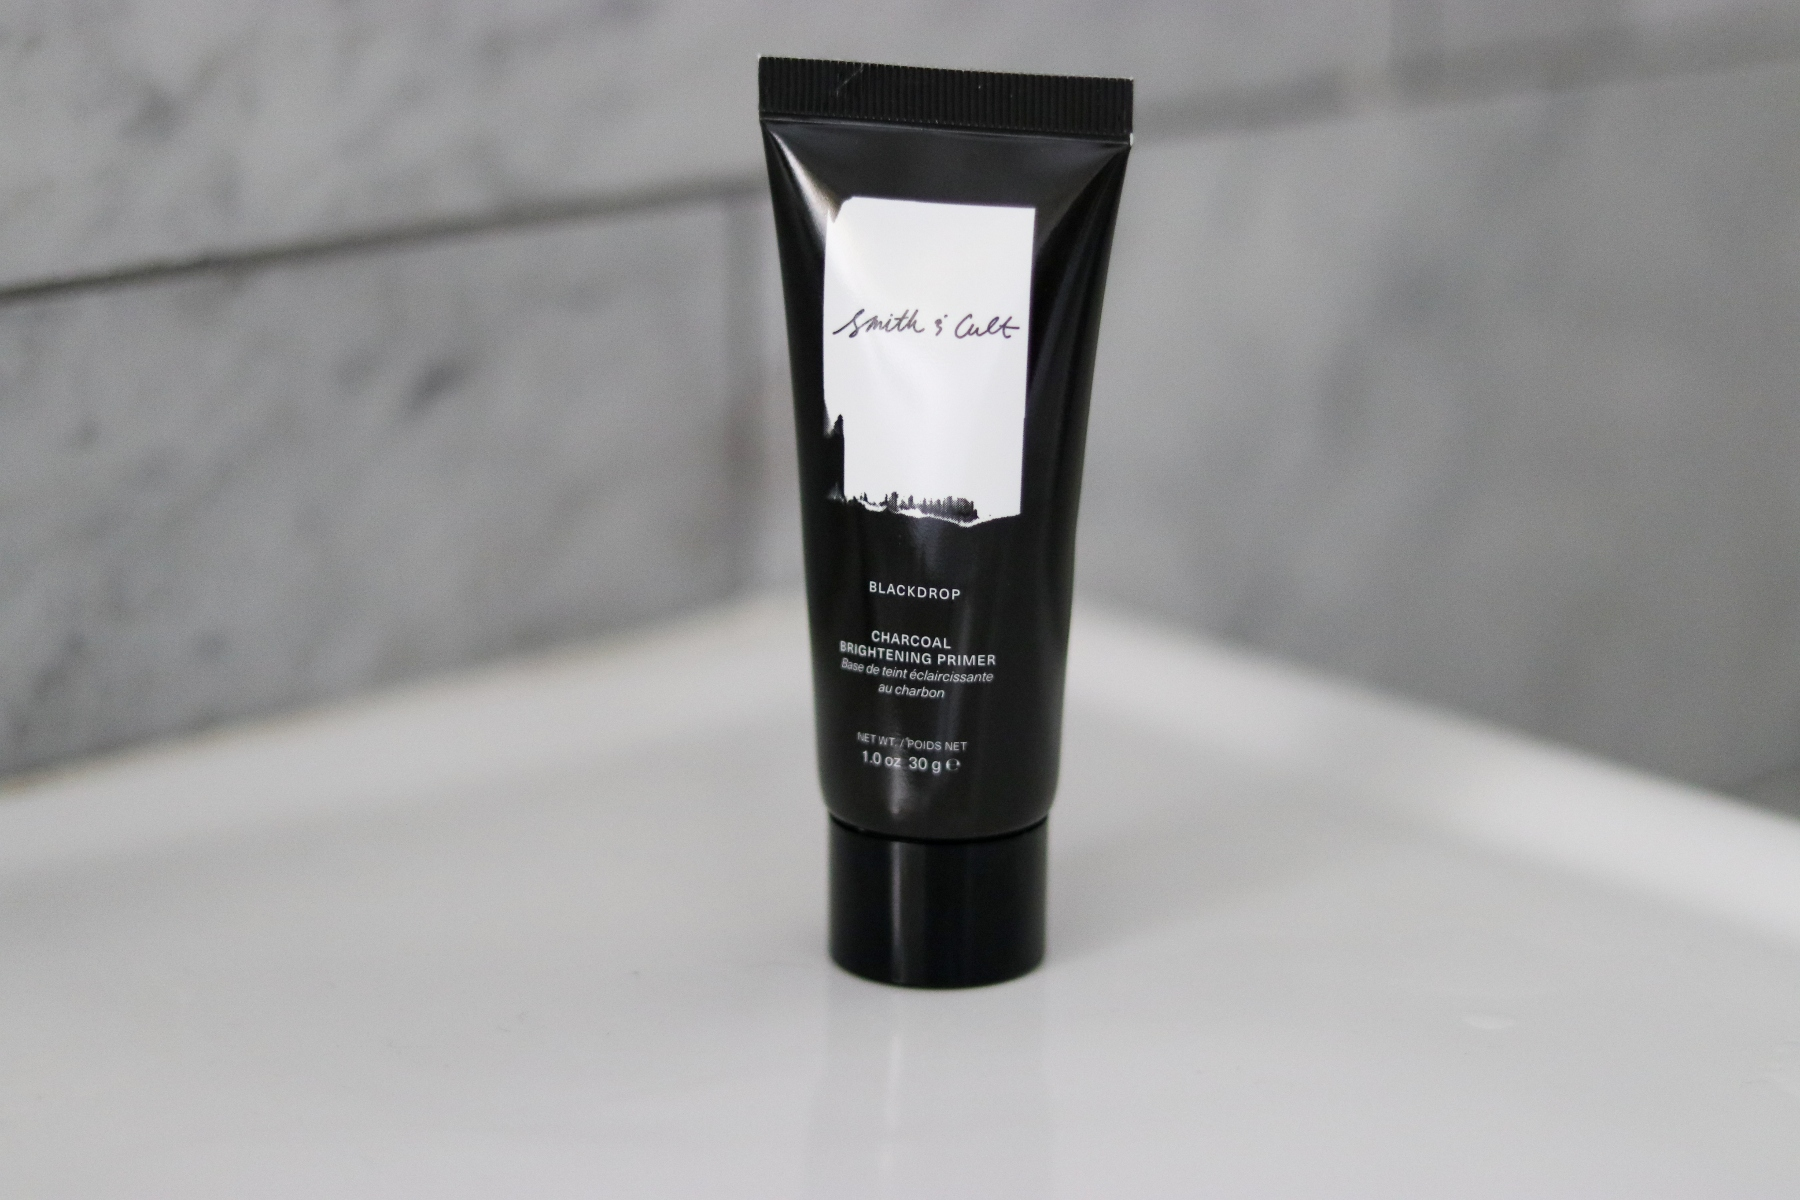 Smith & Cult's Blackdrop Charcoal Brightening Primer